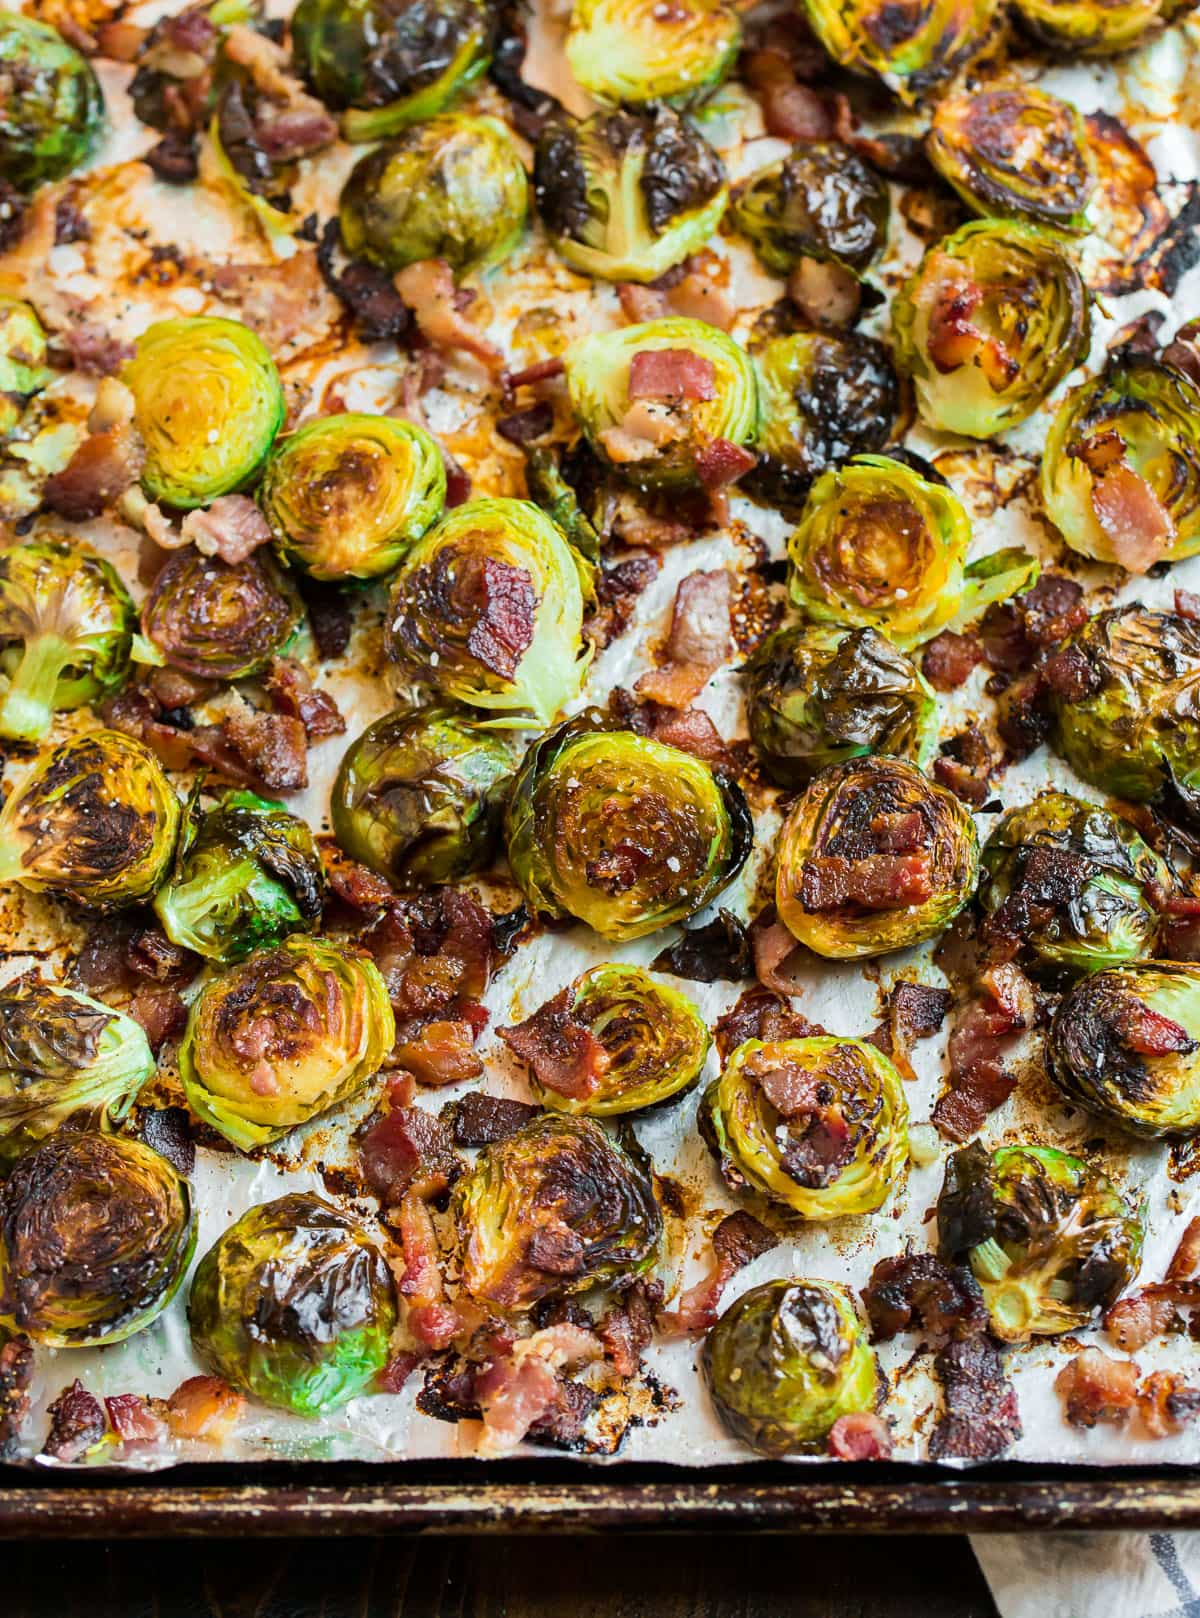 Crispy roasted vegetables on a baking sheet